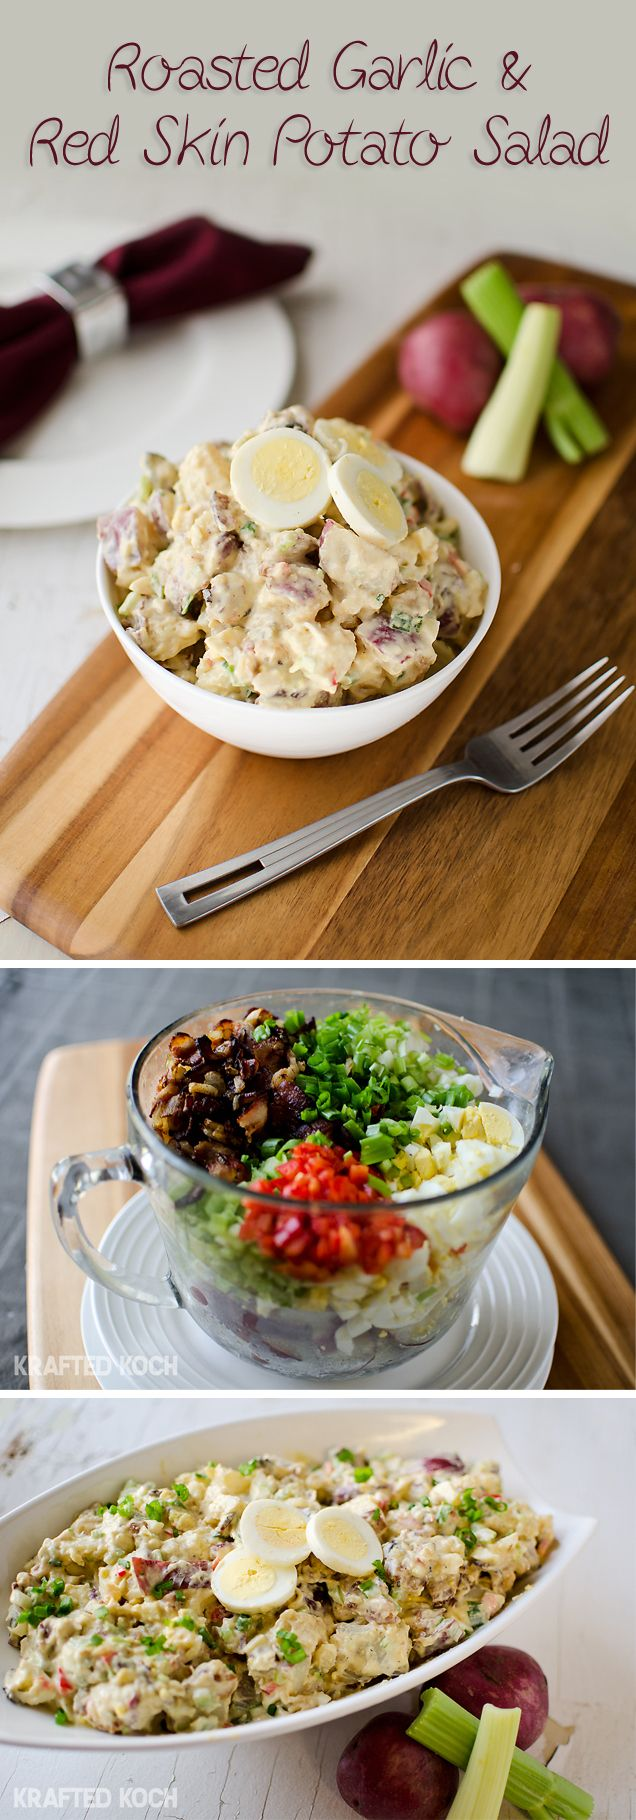 Roasted Garlic  Red Skin Potato Salad with bacon, red peppers, onions, eggs and more! Krafted Koch